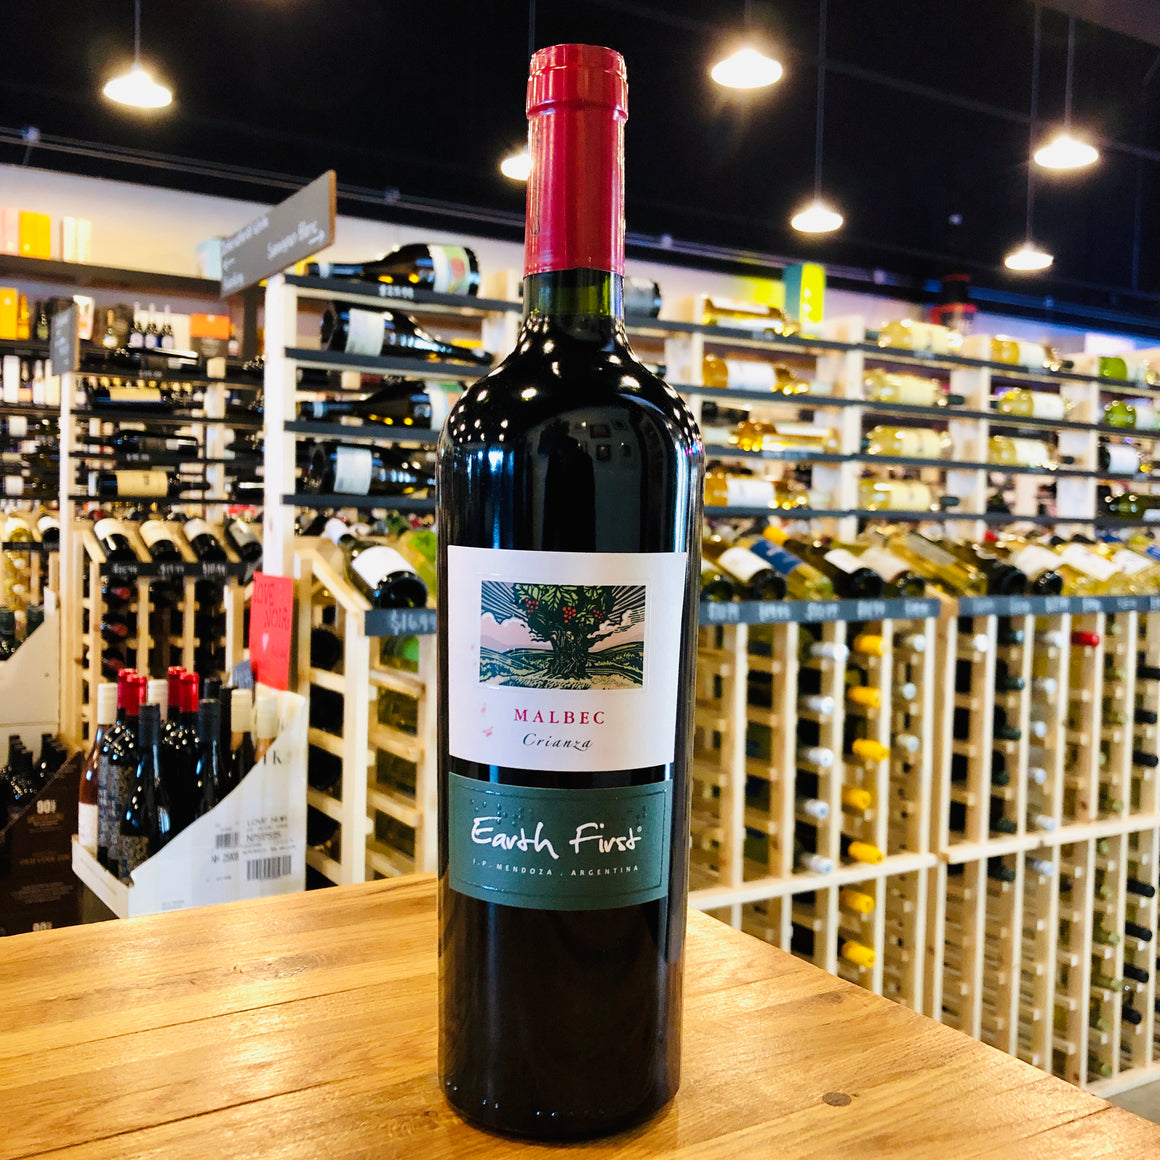 EARTH FIRST CRIANZA MALBEC 2018 750ML